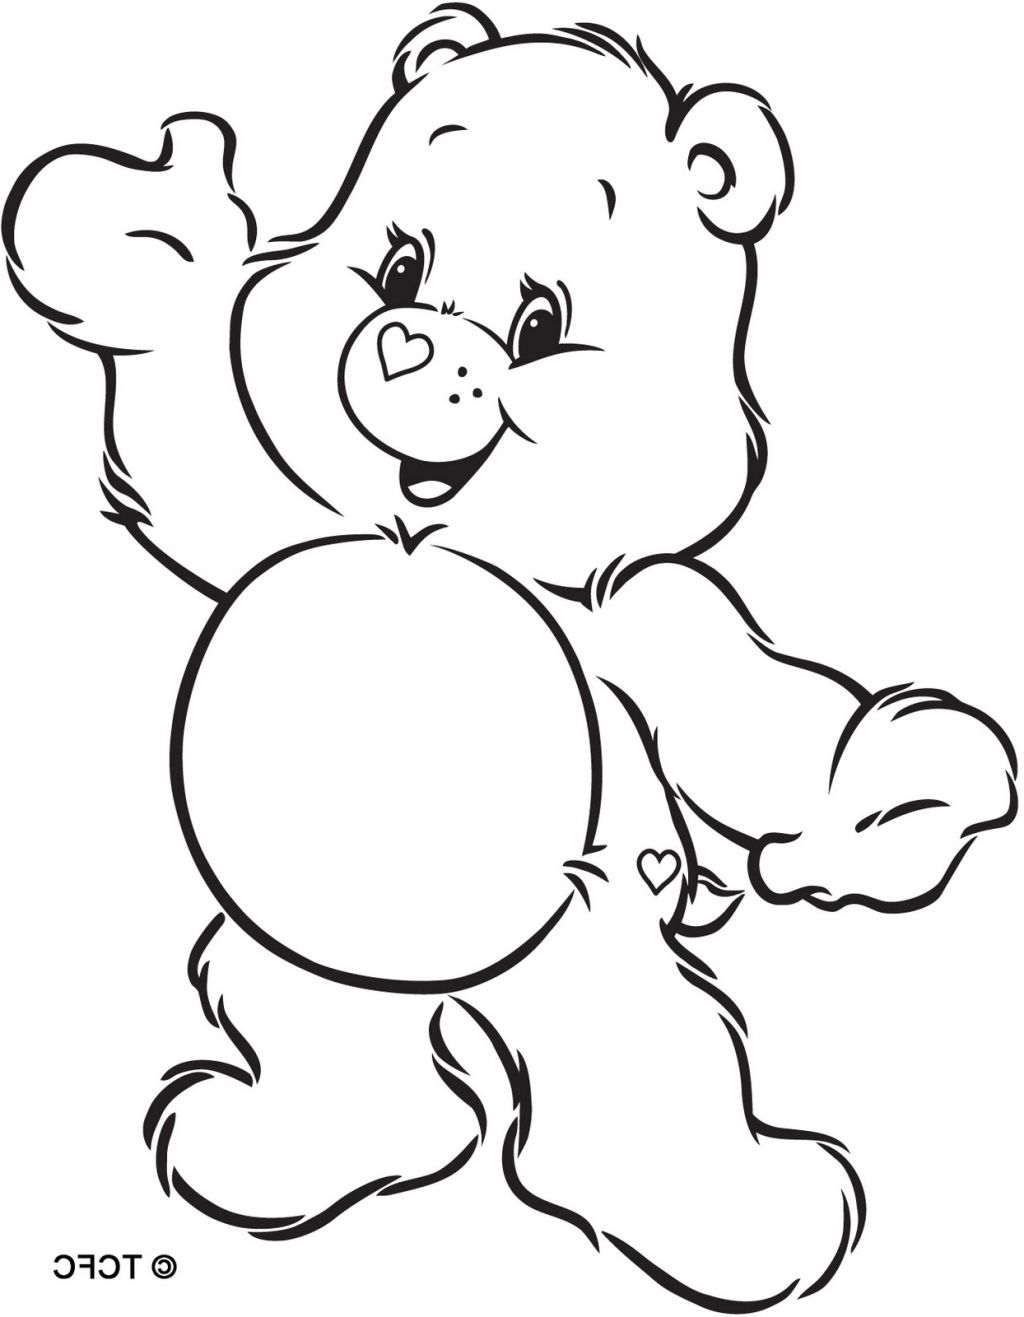 Care bears clipart black and white svg free Care Bear Drawing | Free download best Care Bear Drawing on ... svg free